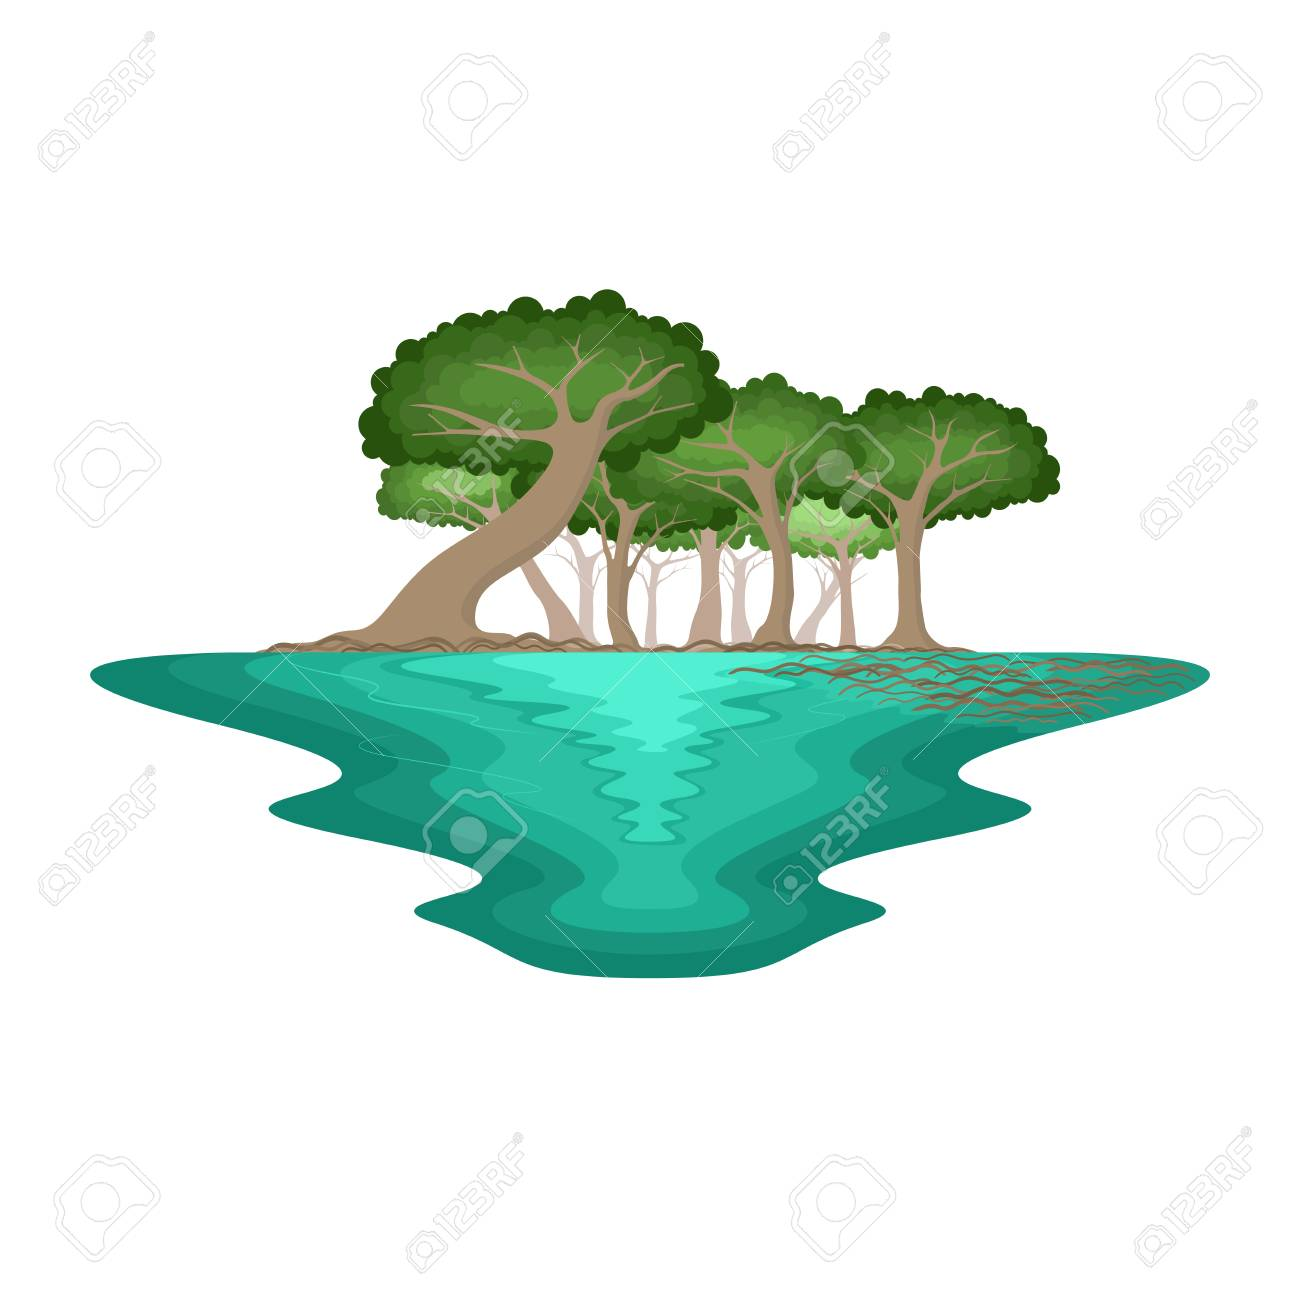 mangrove forest swamp environment tropical landscape vector royalty free cliparts vectors and stock illustration image 106099765 mangrove forest swamp environment tropical landscape vector